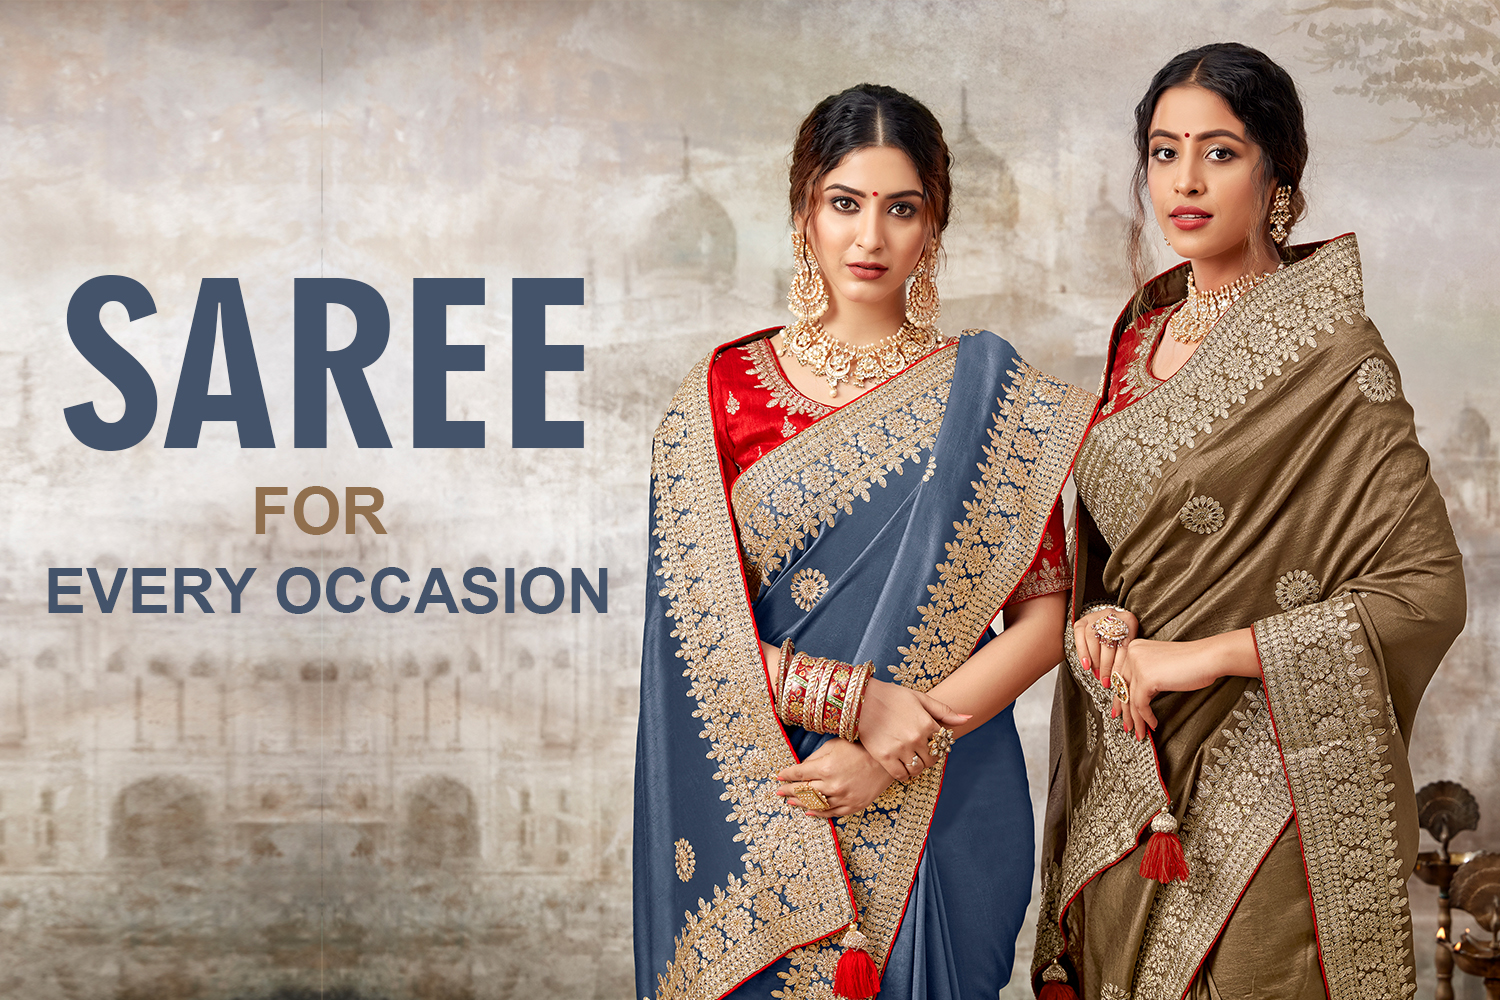 Saree For Every Occasion | The Brand Barrel